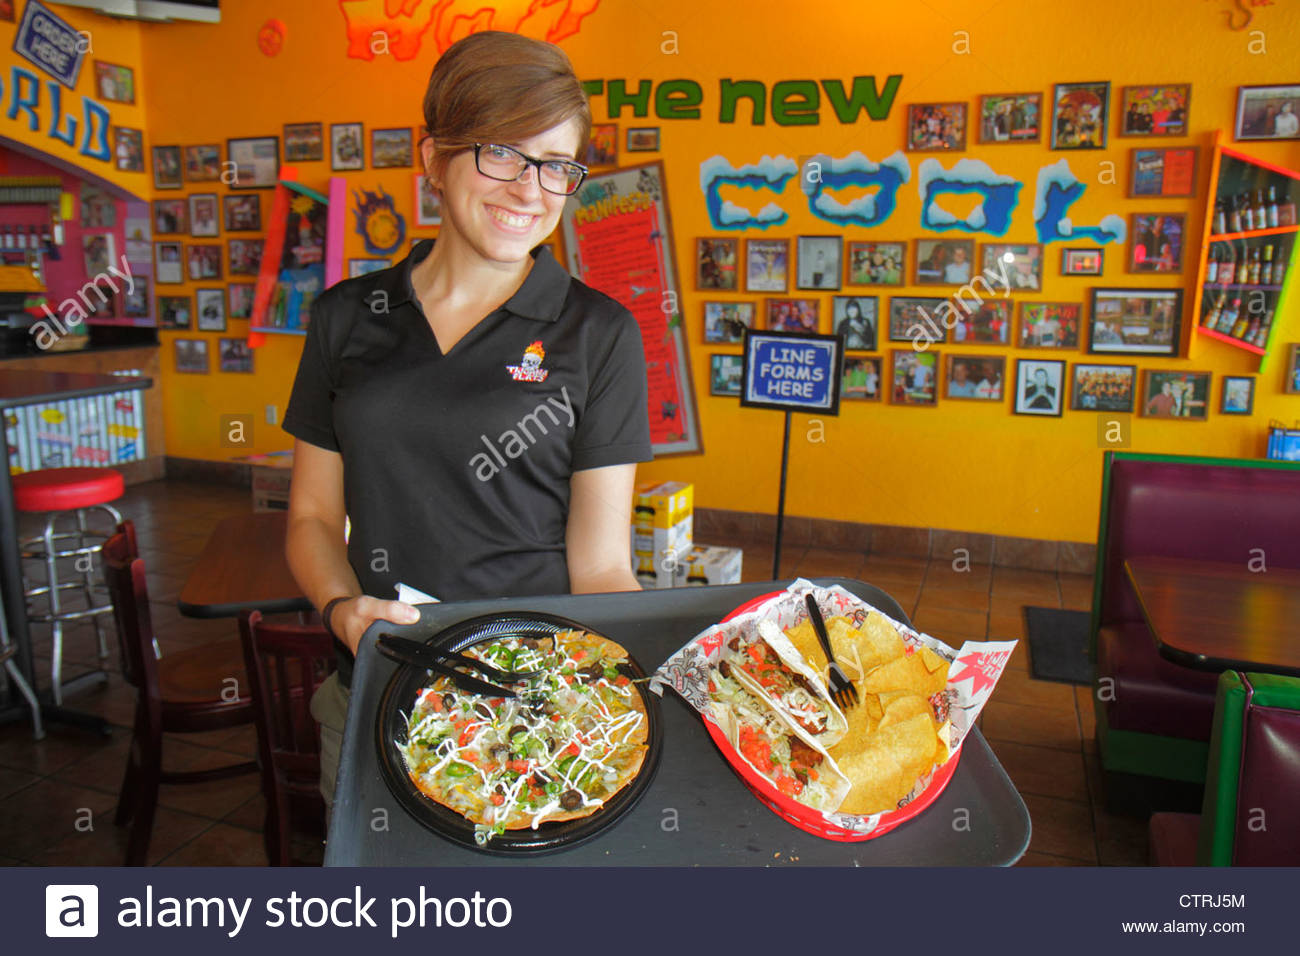 Mexican Restaurant Decor mexican restaurant waitress stock photos & mexican restaurant